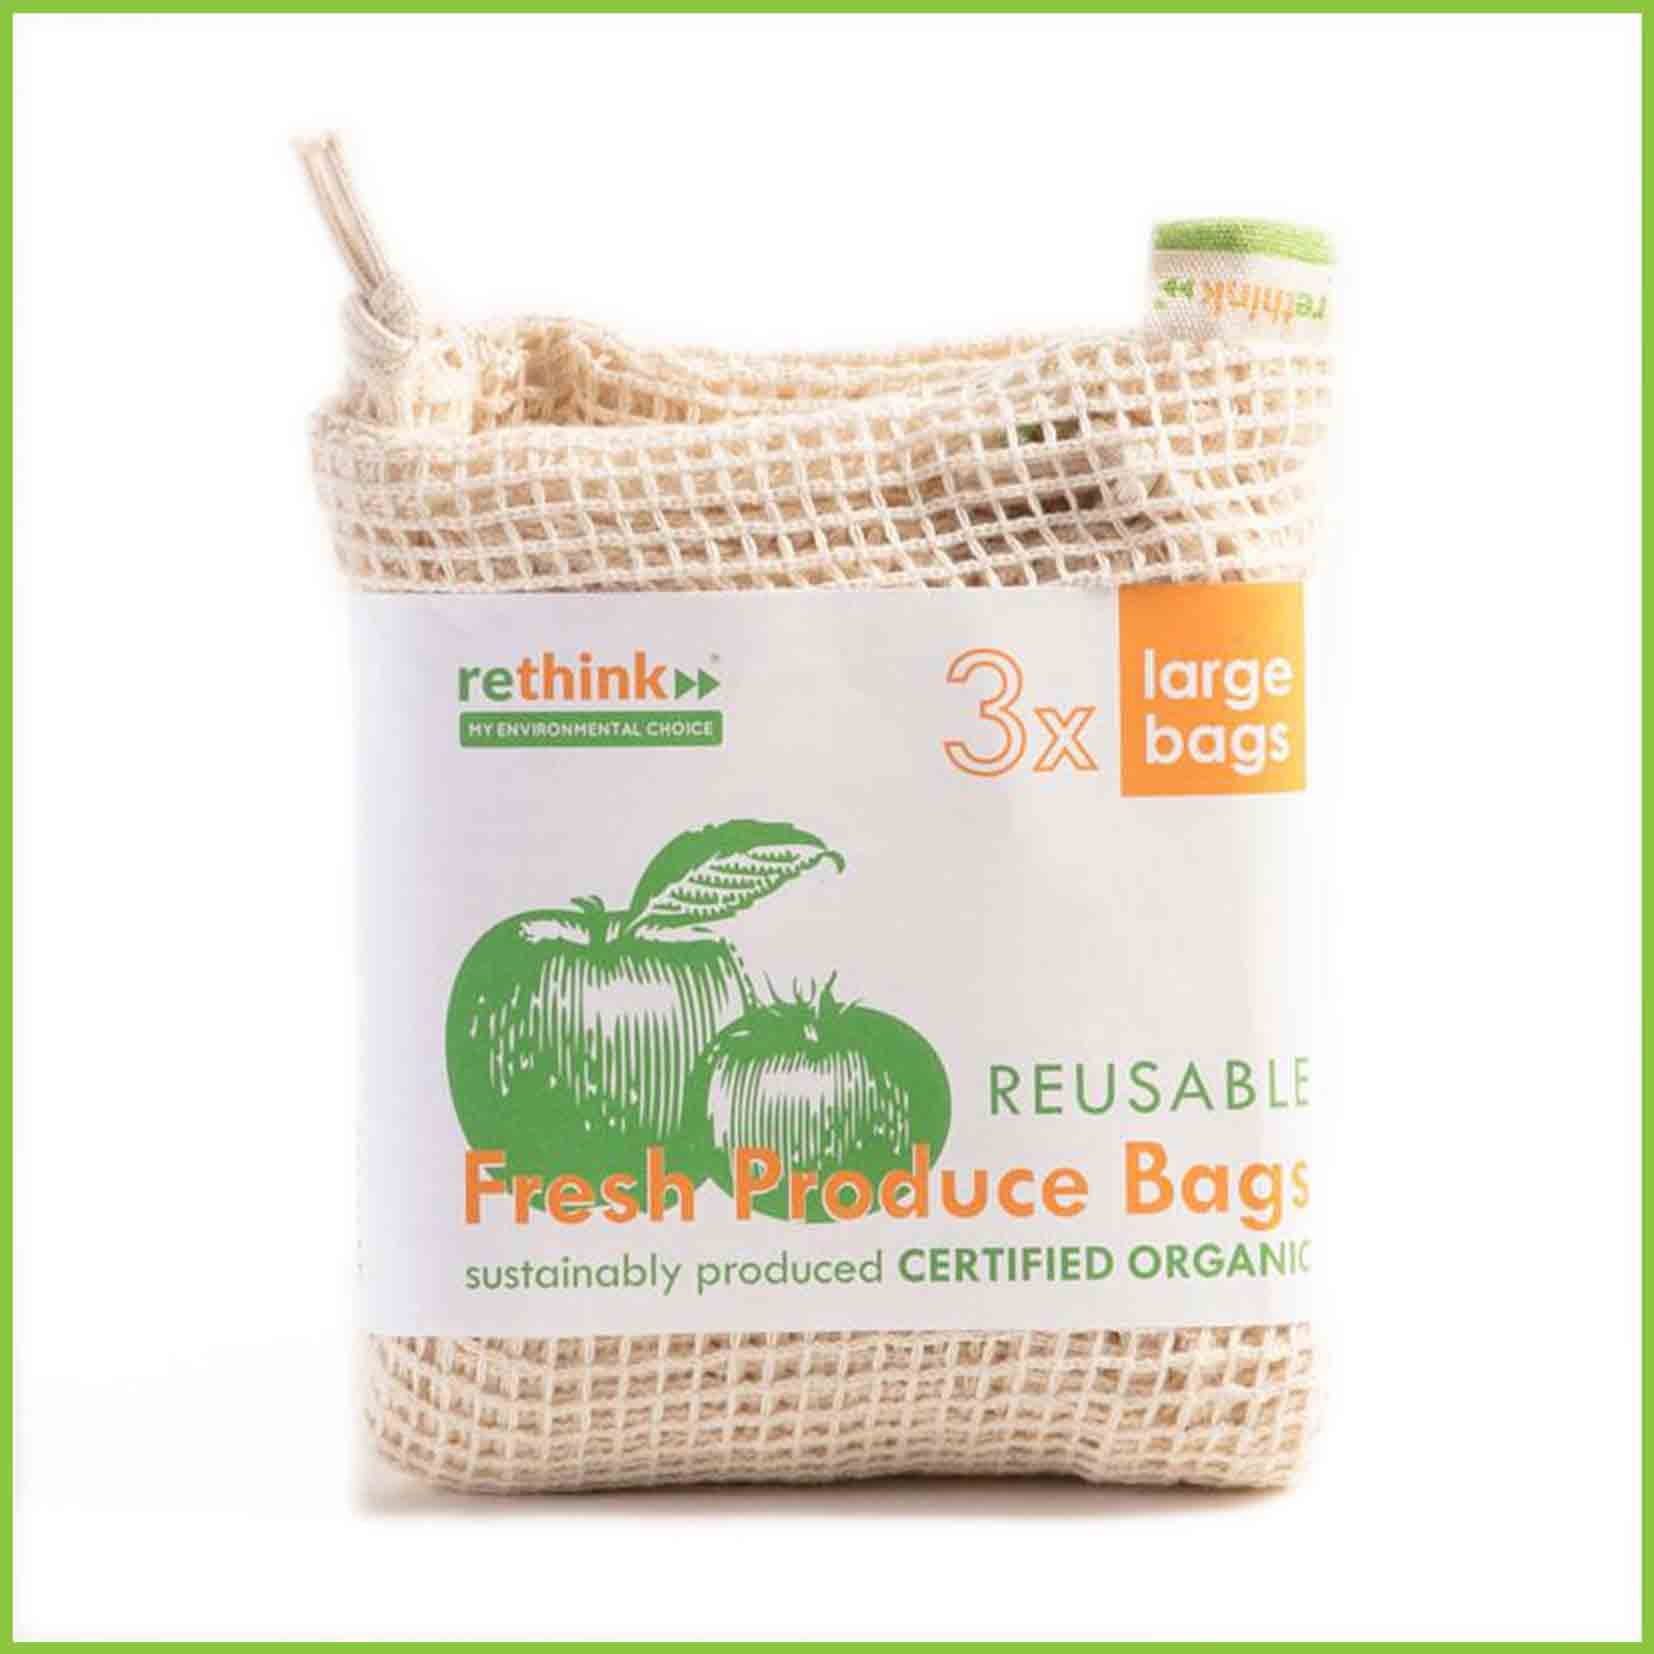 A three pack of large reusable veggie bags from Rethink.